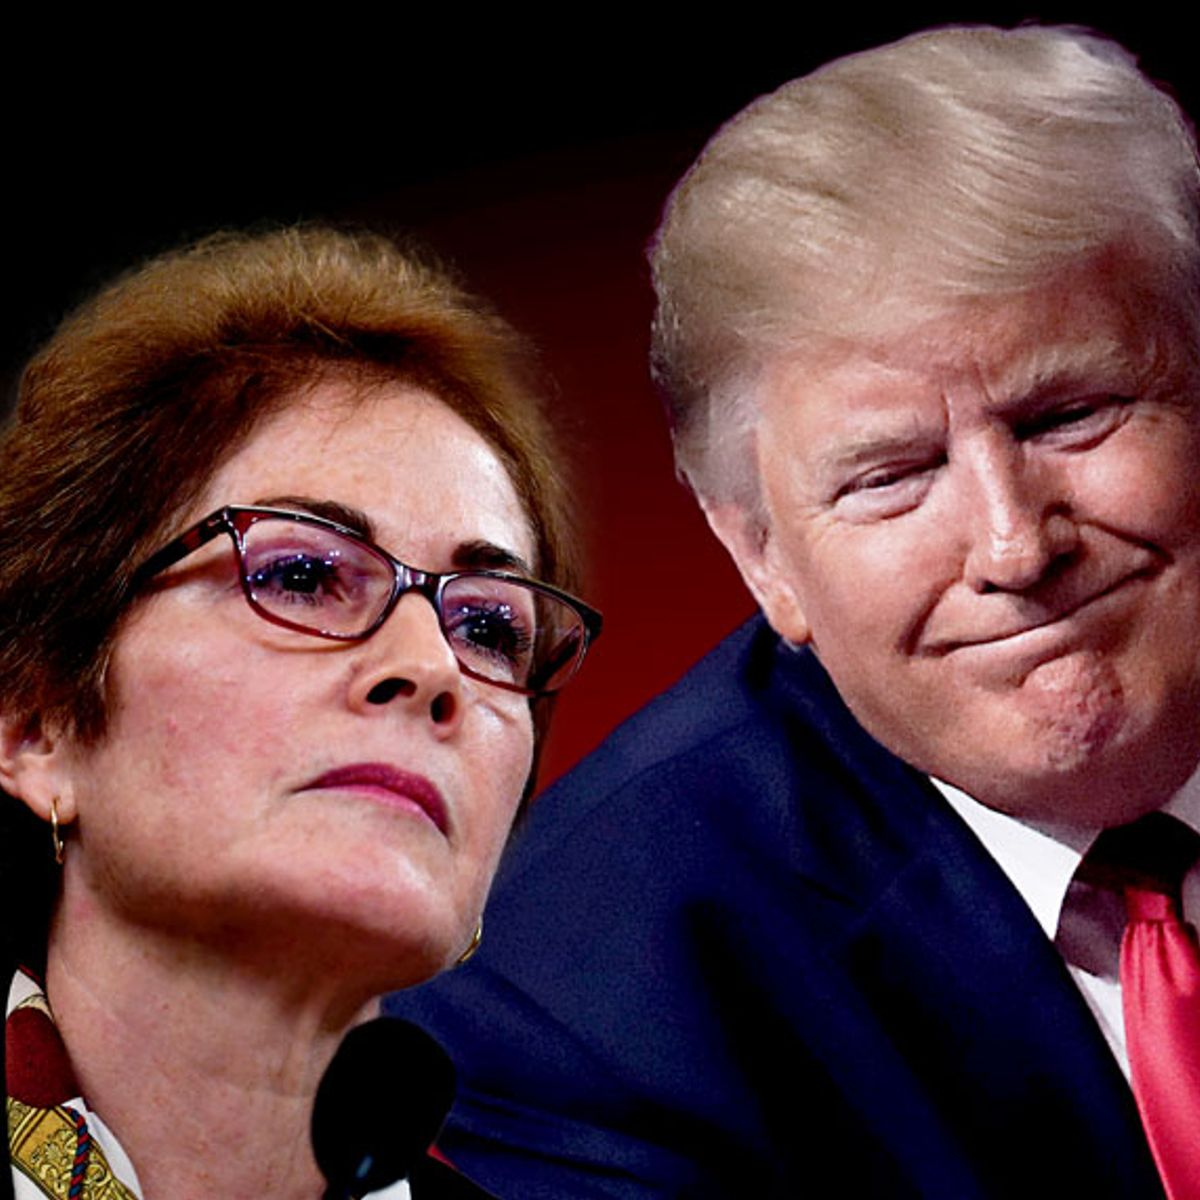 """Leaked audio appears to catch Trump demanding the firing of Marie Yovanovitch: """"Get rid of her!"""""""